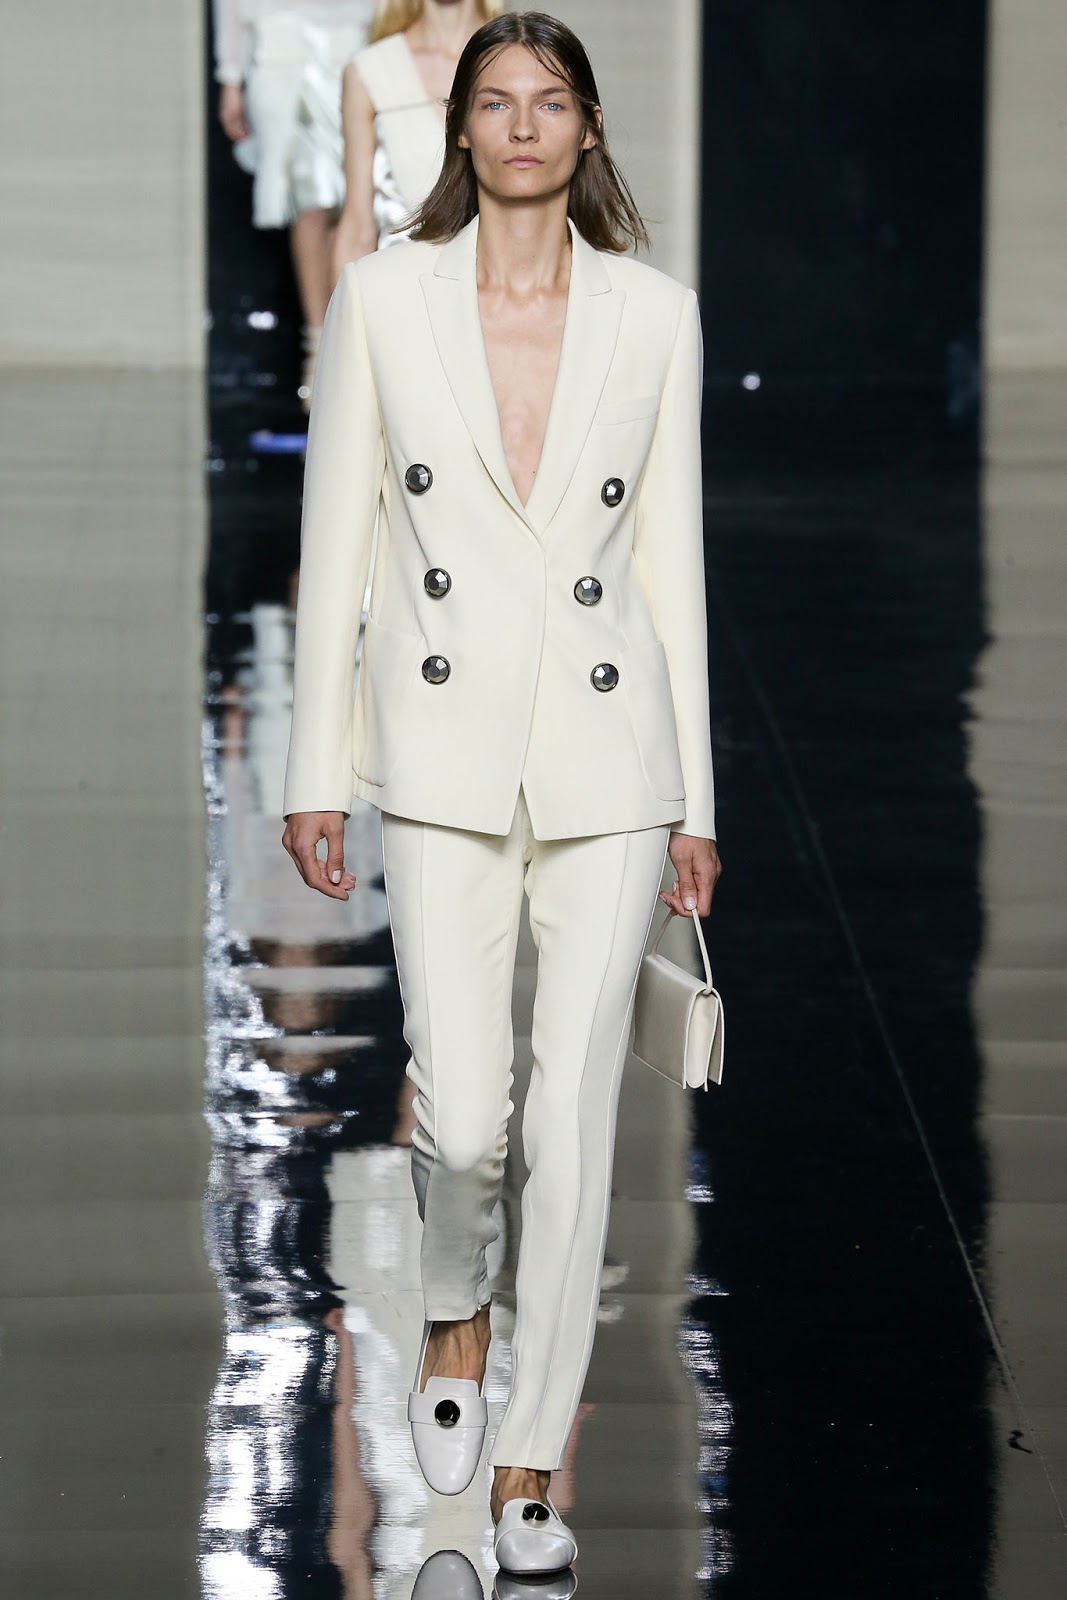 Christophe Kane / Spring/Summer 2015 trends / trouser suit / styling tips and outfit inspiration / via fashioned by love british fashion blog